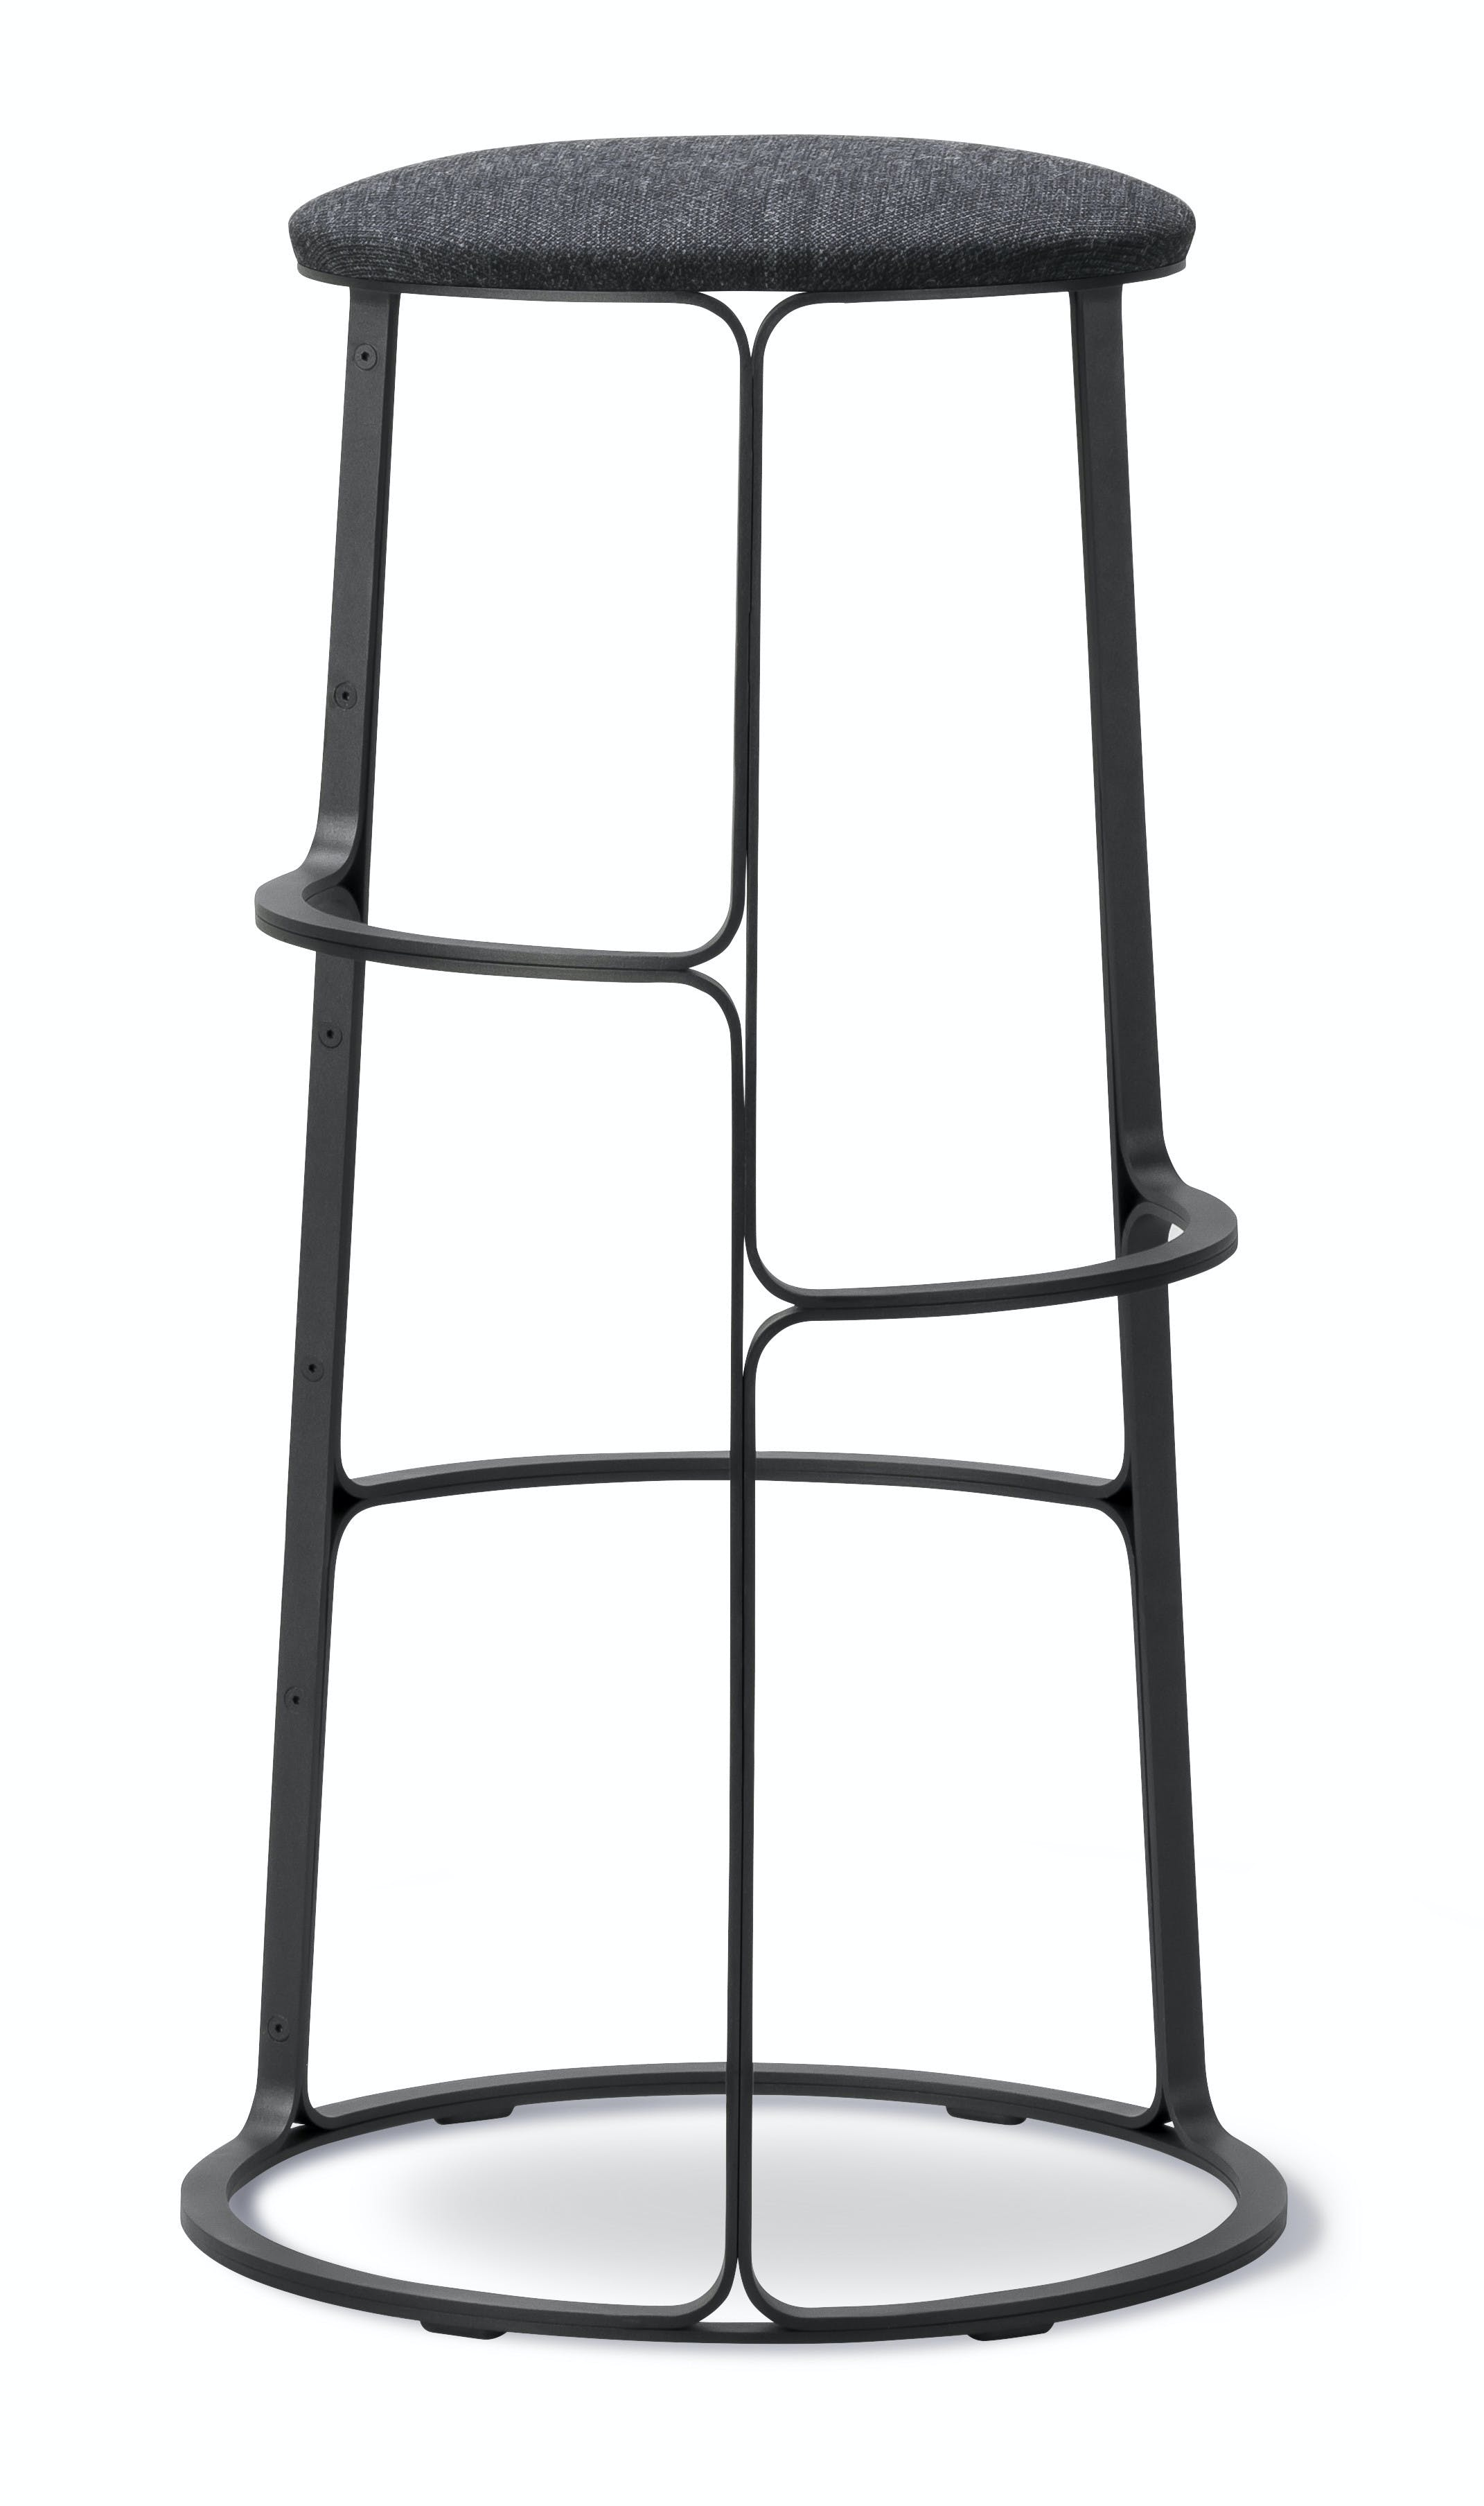 Fredericia Furniture Barbry Stool Grey Haute Living